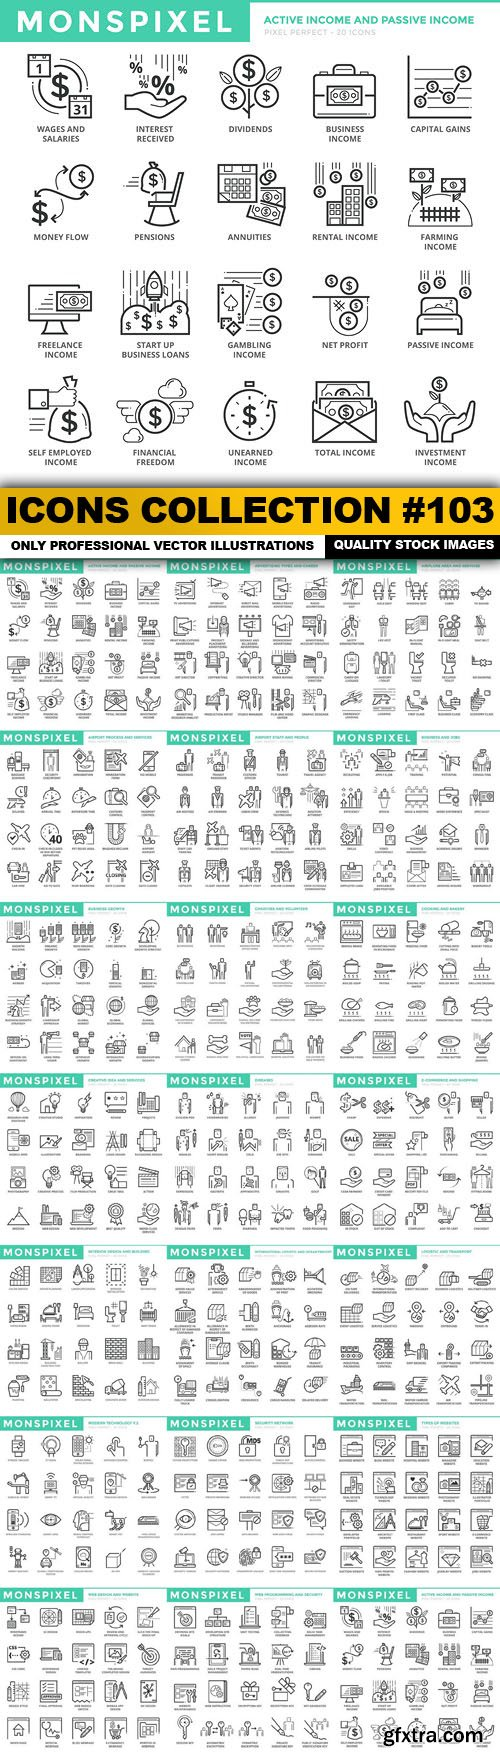 Icons Collection #103 - 20 Vector